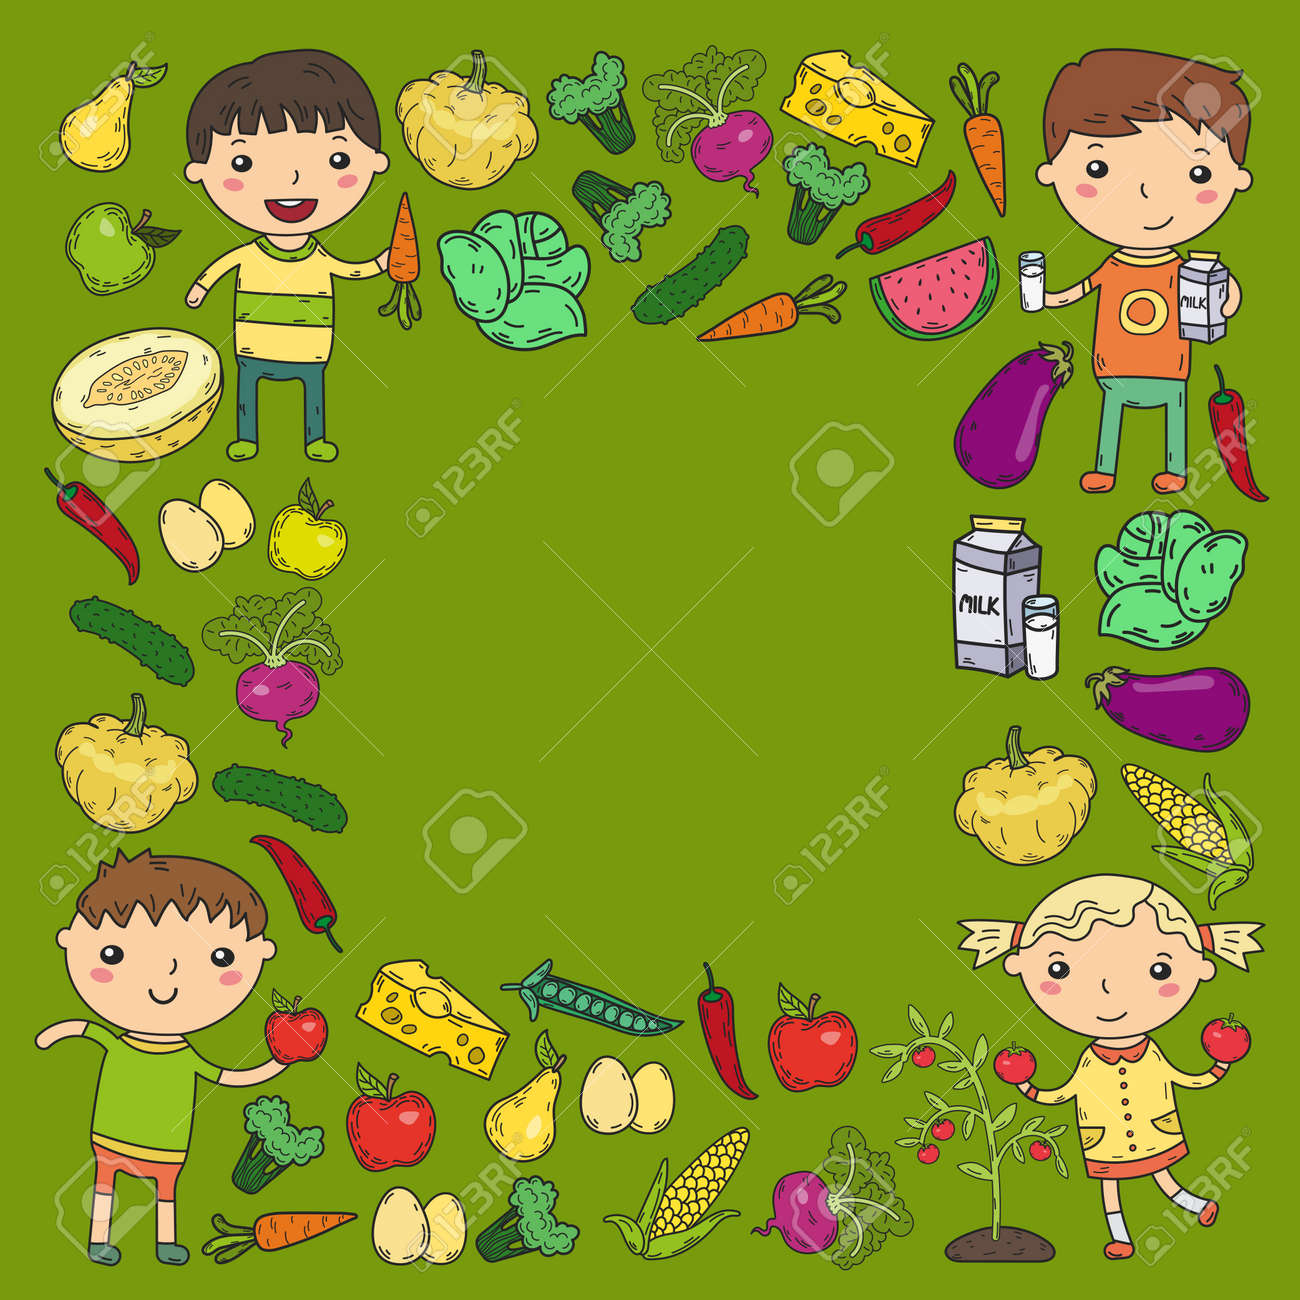 Kids Eating Healthy Food Clipart A Kindergarten Nursery Preschool School Kids Eat Healthy Food